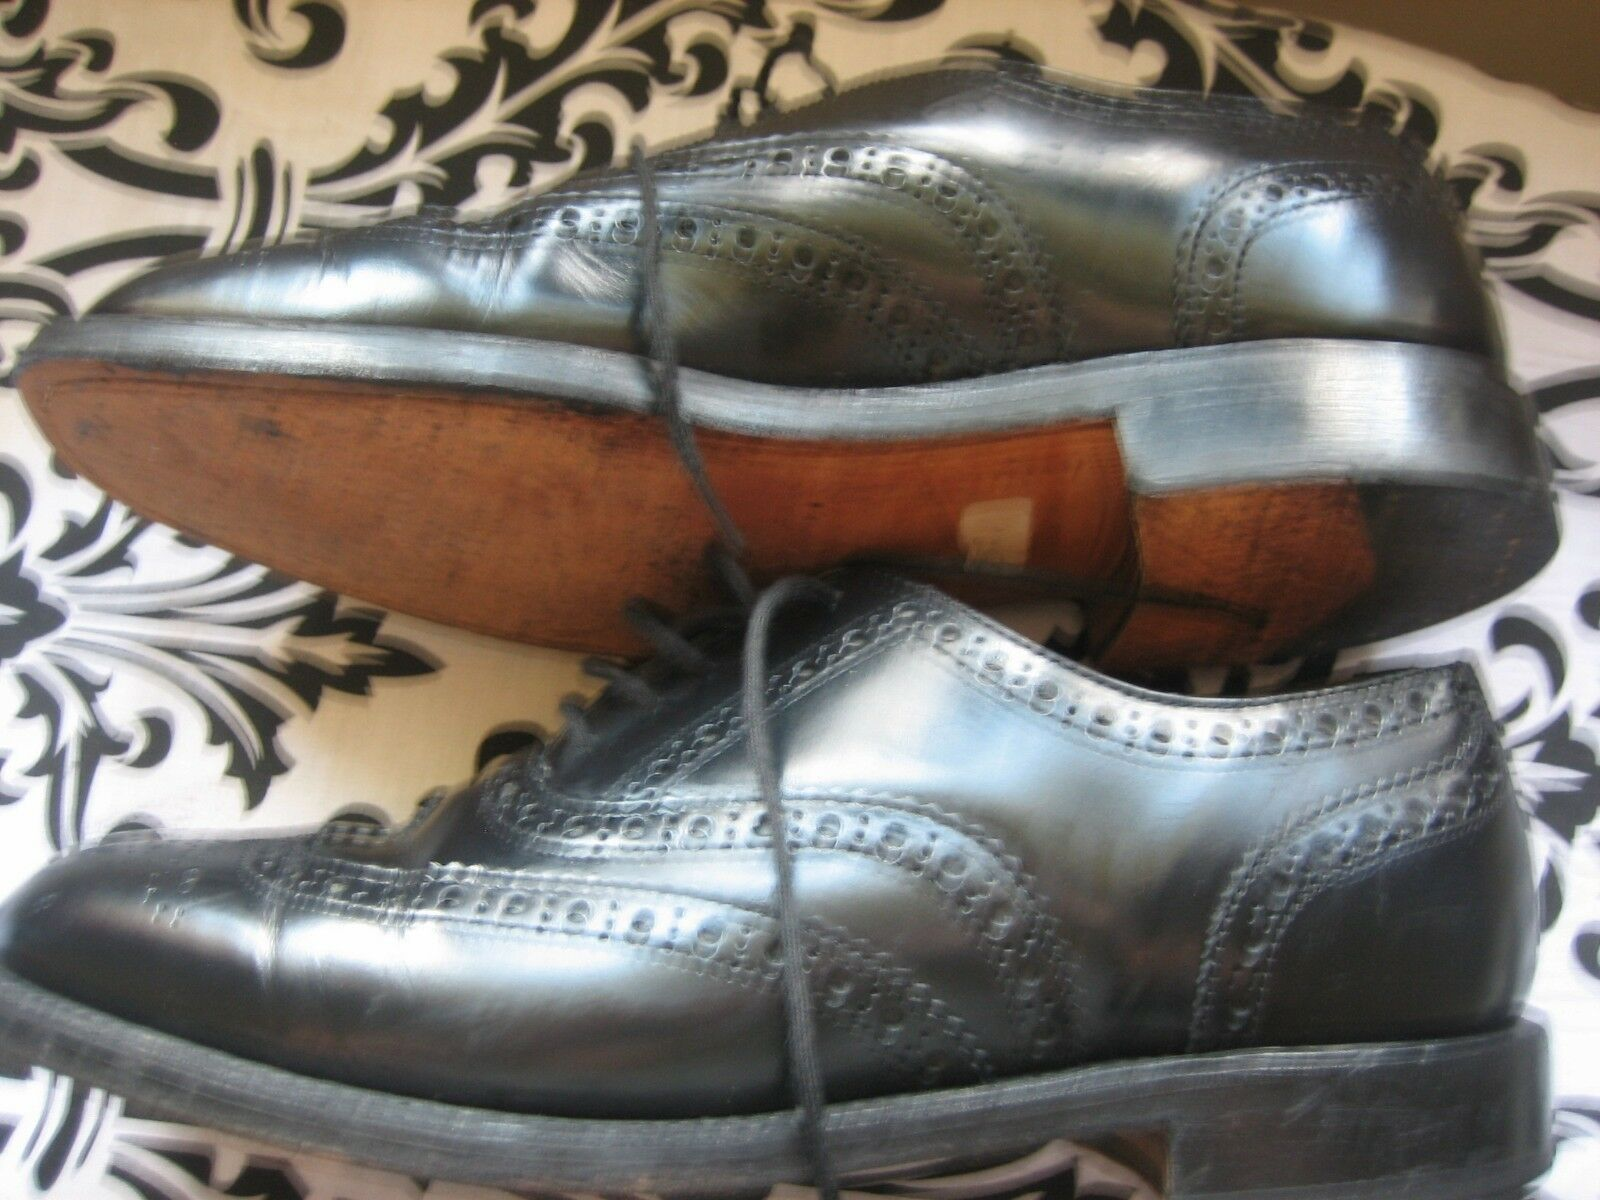 MENS BLACK K BY BY BY ROYAL APPOINTMENT BROGUES SIZE 8 1/2 No G181163 5a8e72